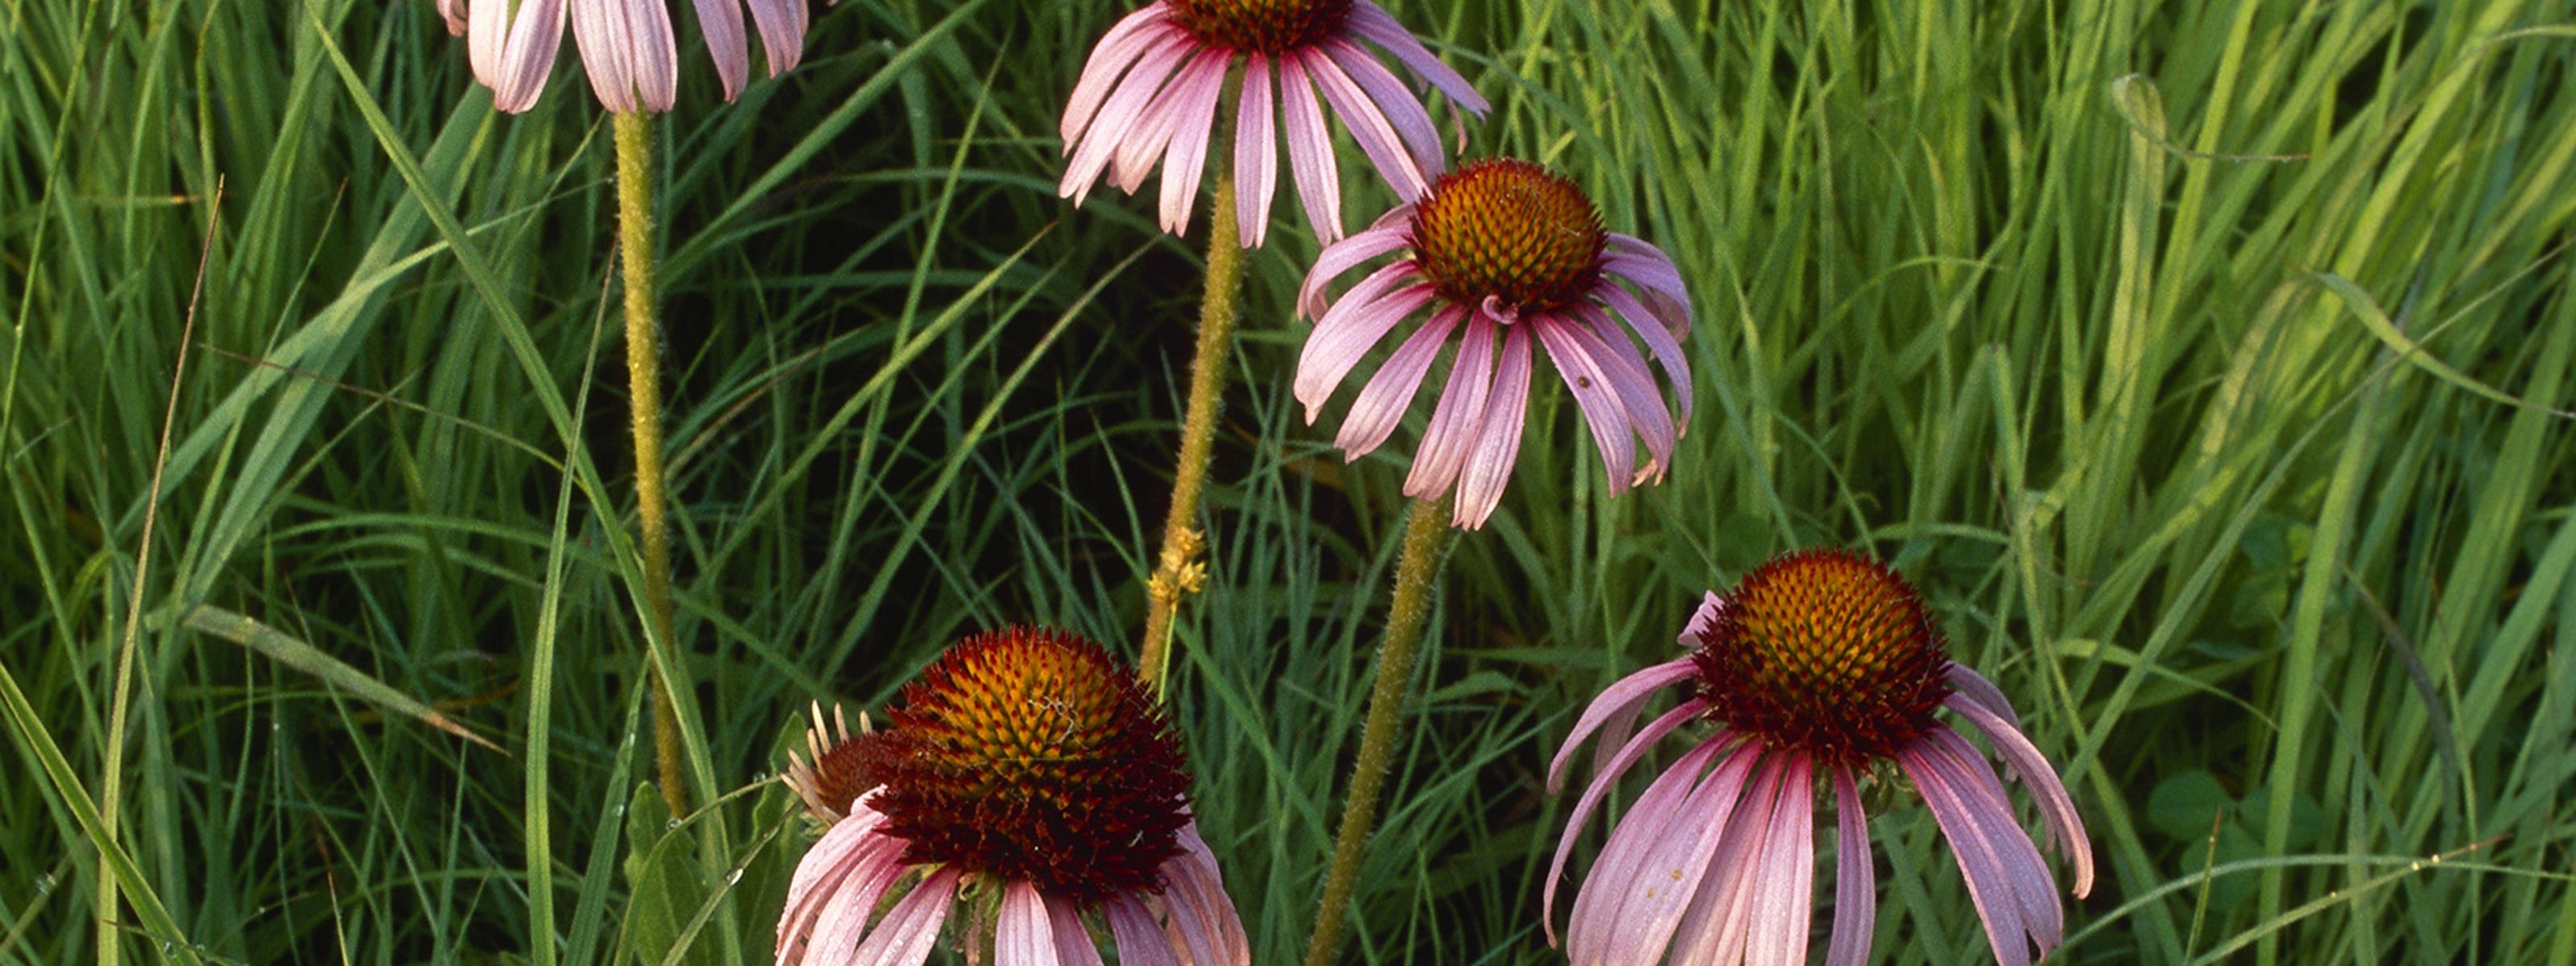 Five purple coneflowers emerge from tall grasses.